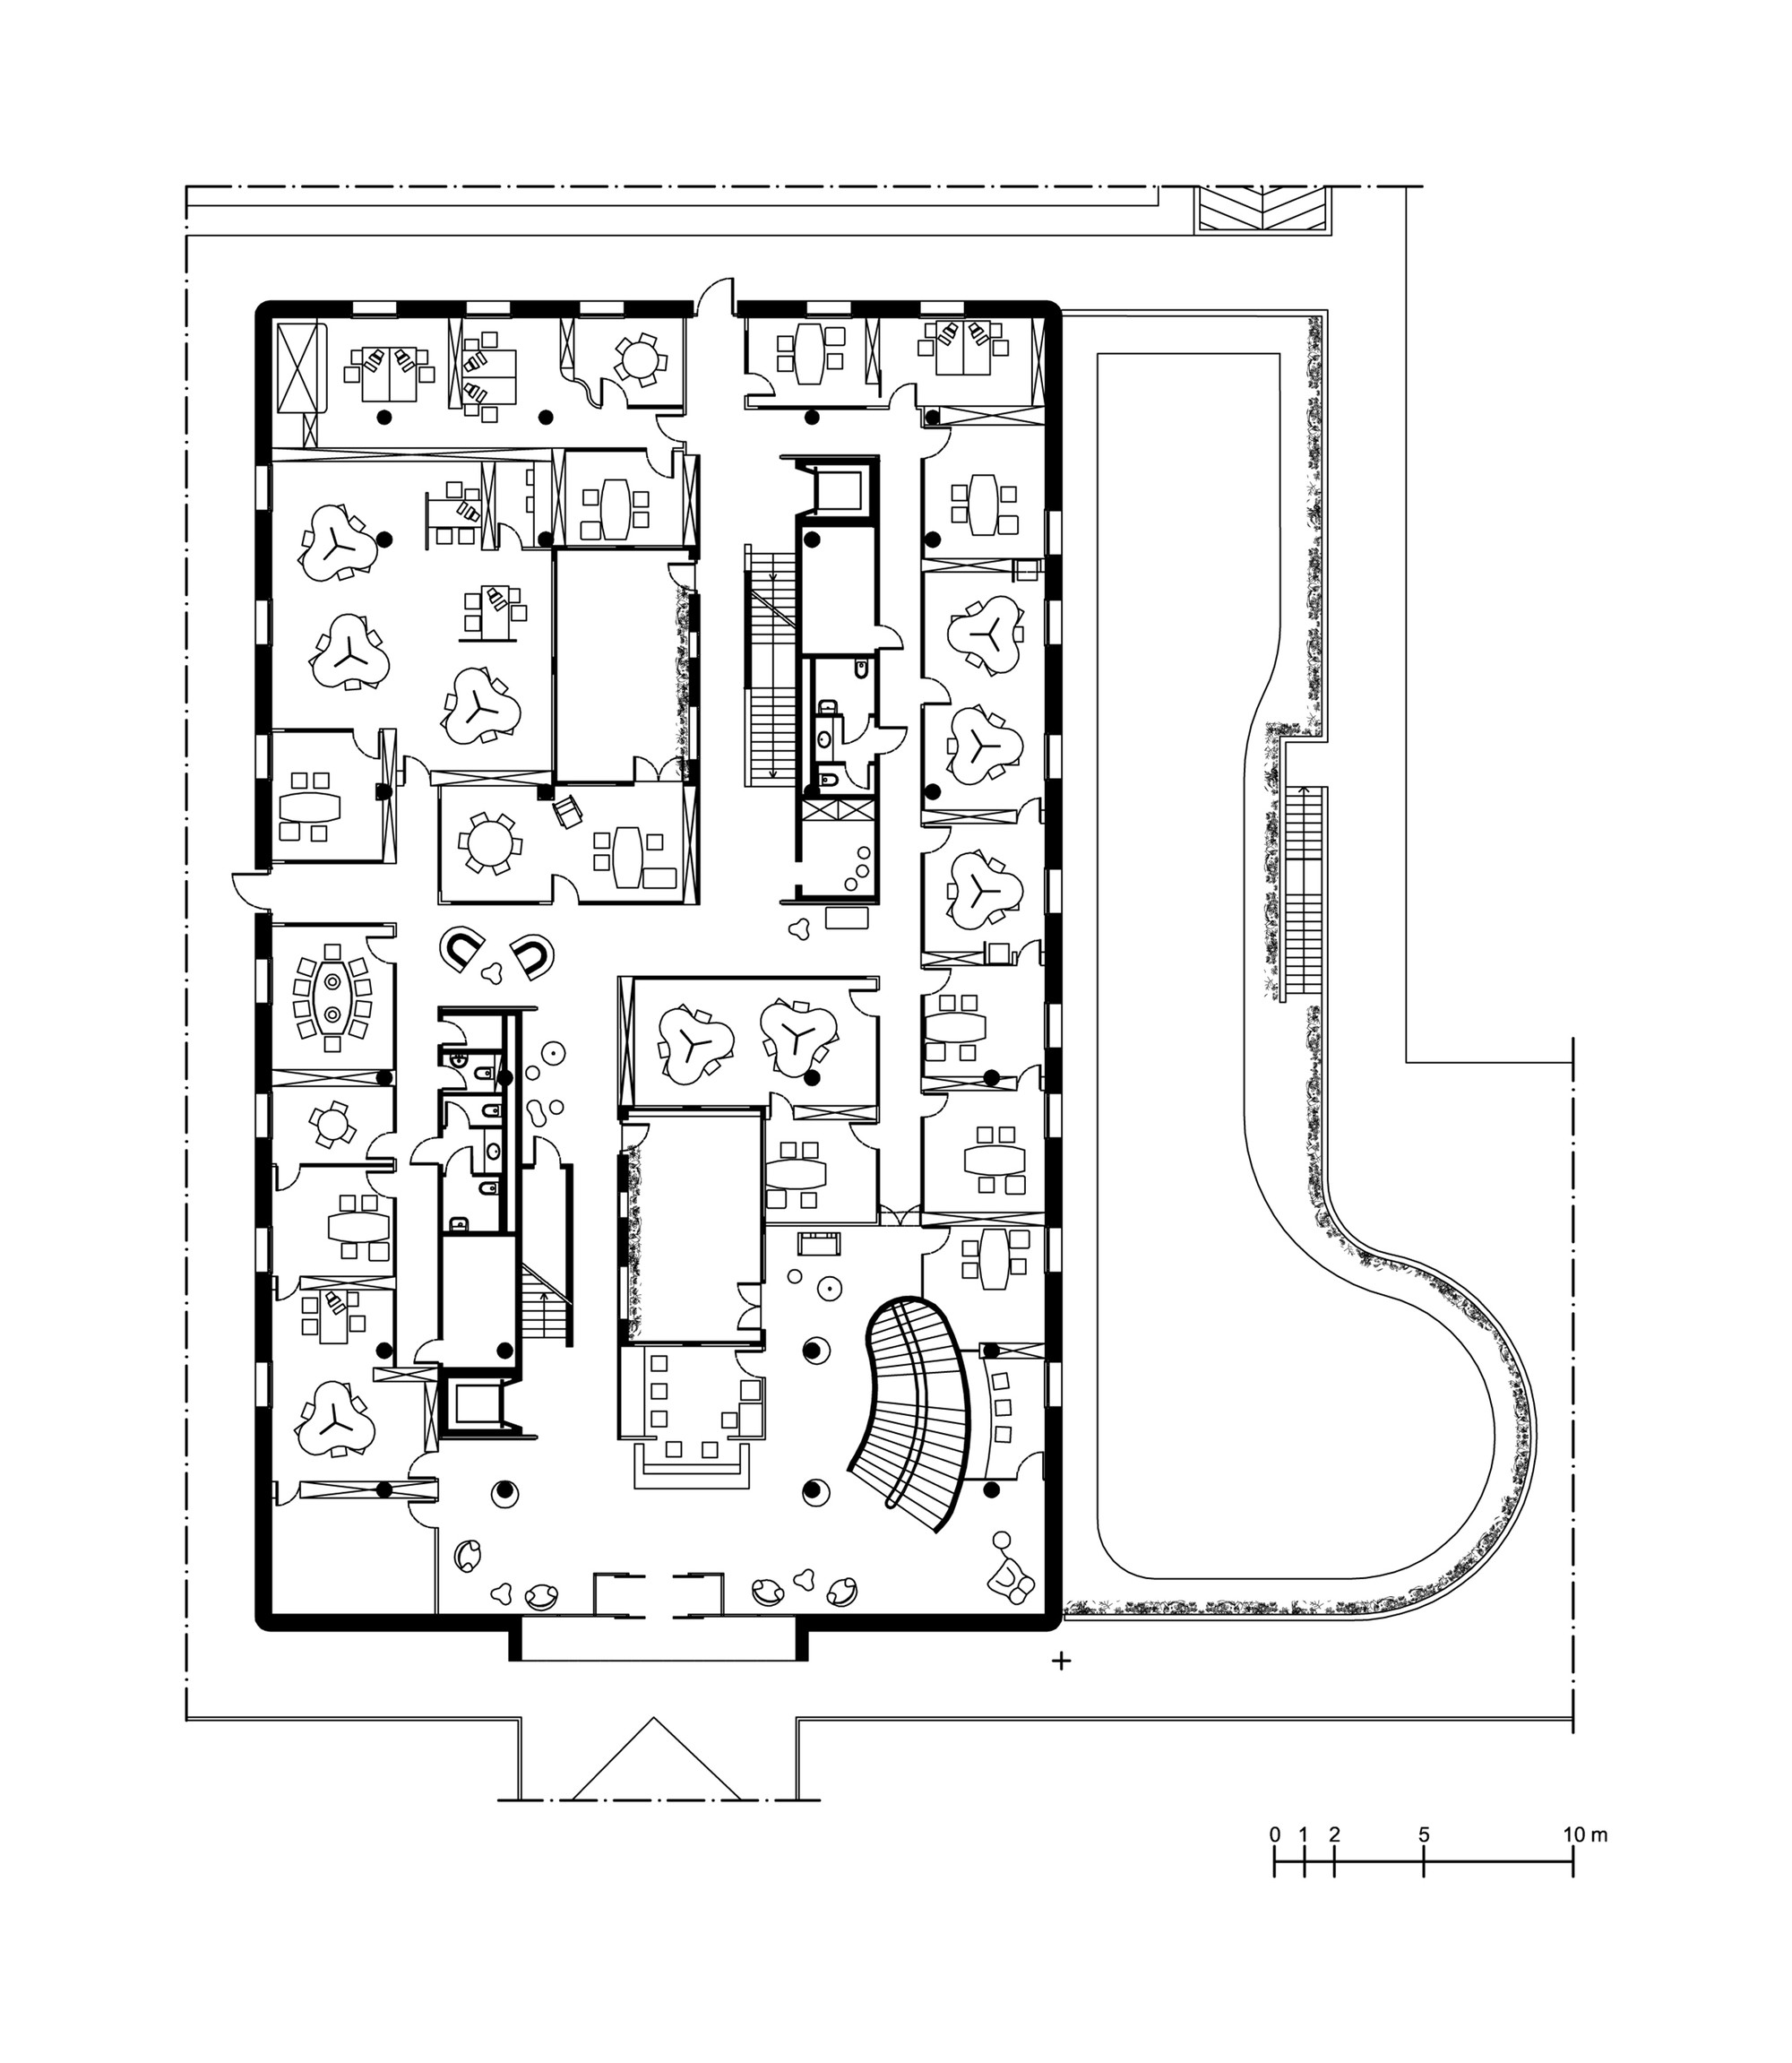 Bank of pisa and fornacette new hqground floor plan